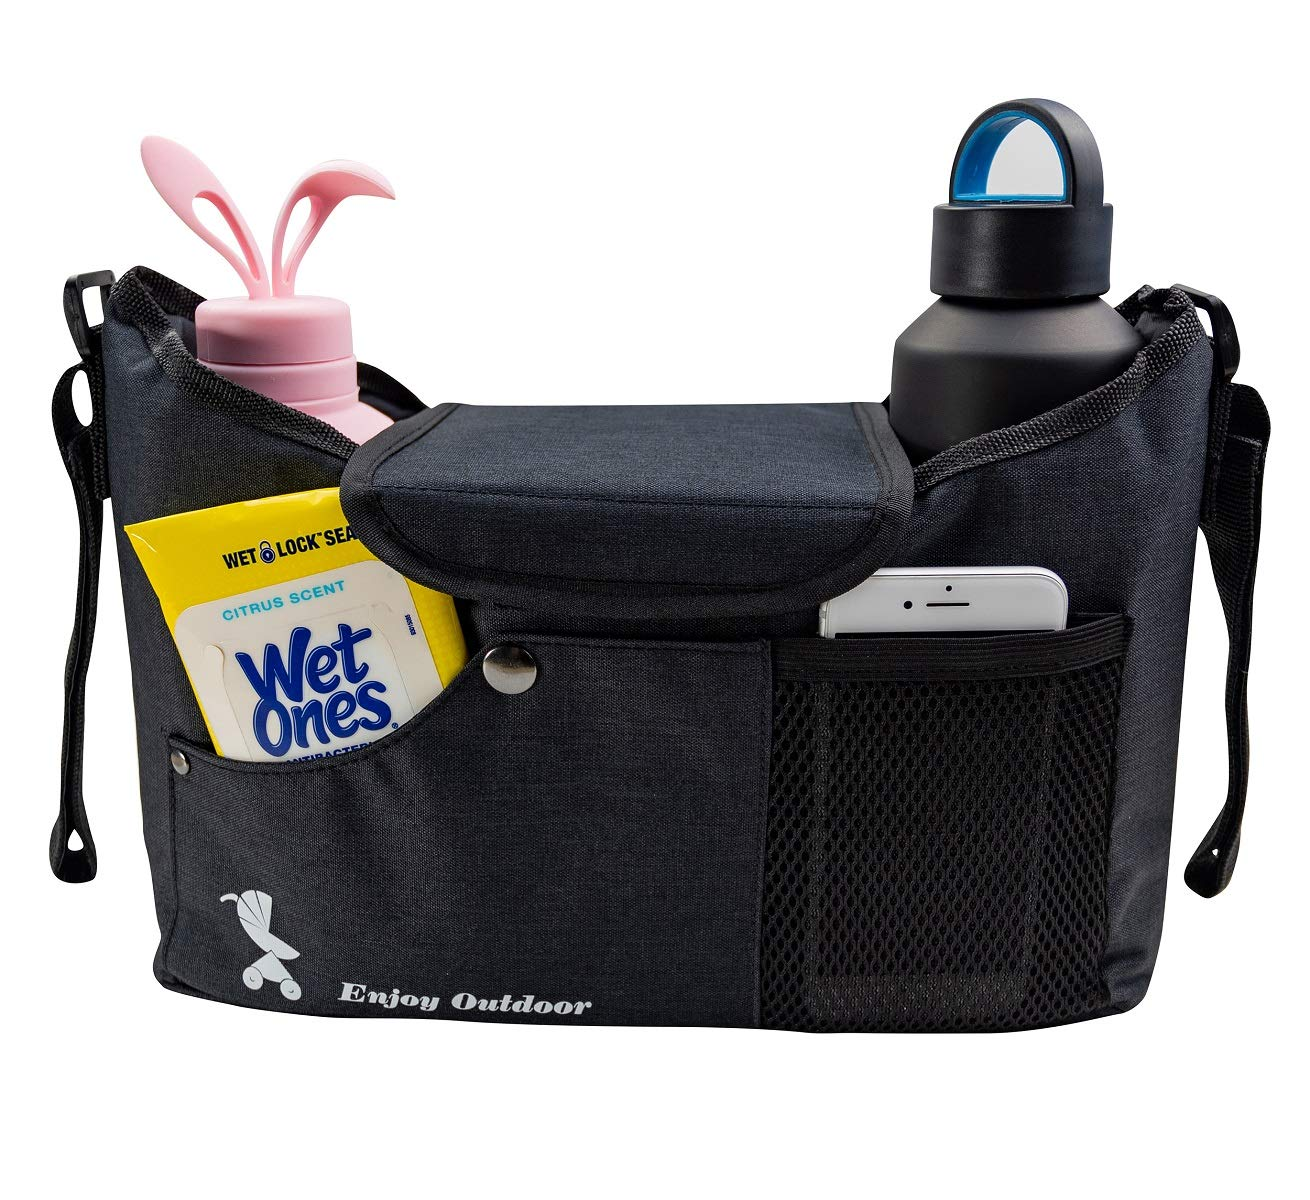 Baby Stroller Caddy Organizer Bag with Cup Holders Bonus Mosquito Net